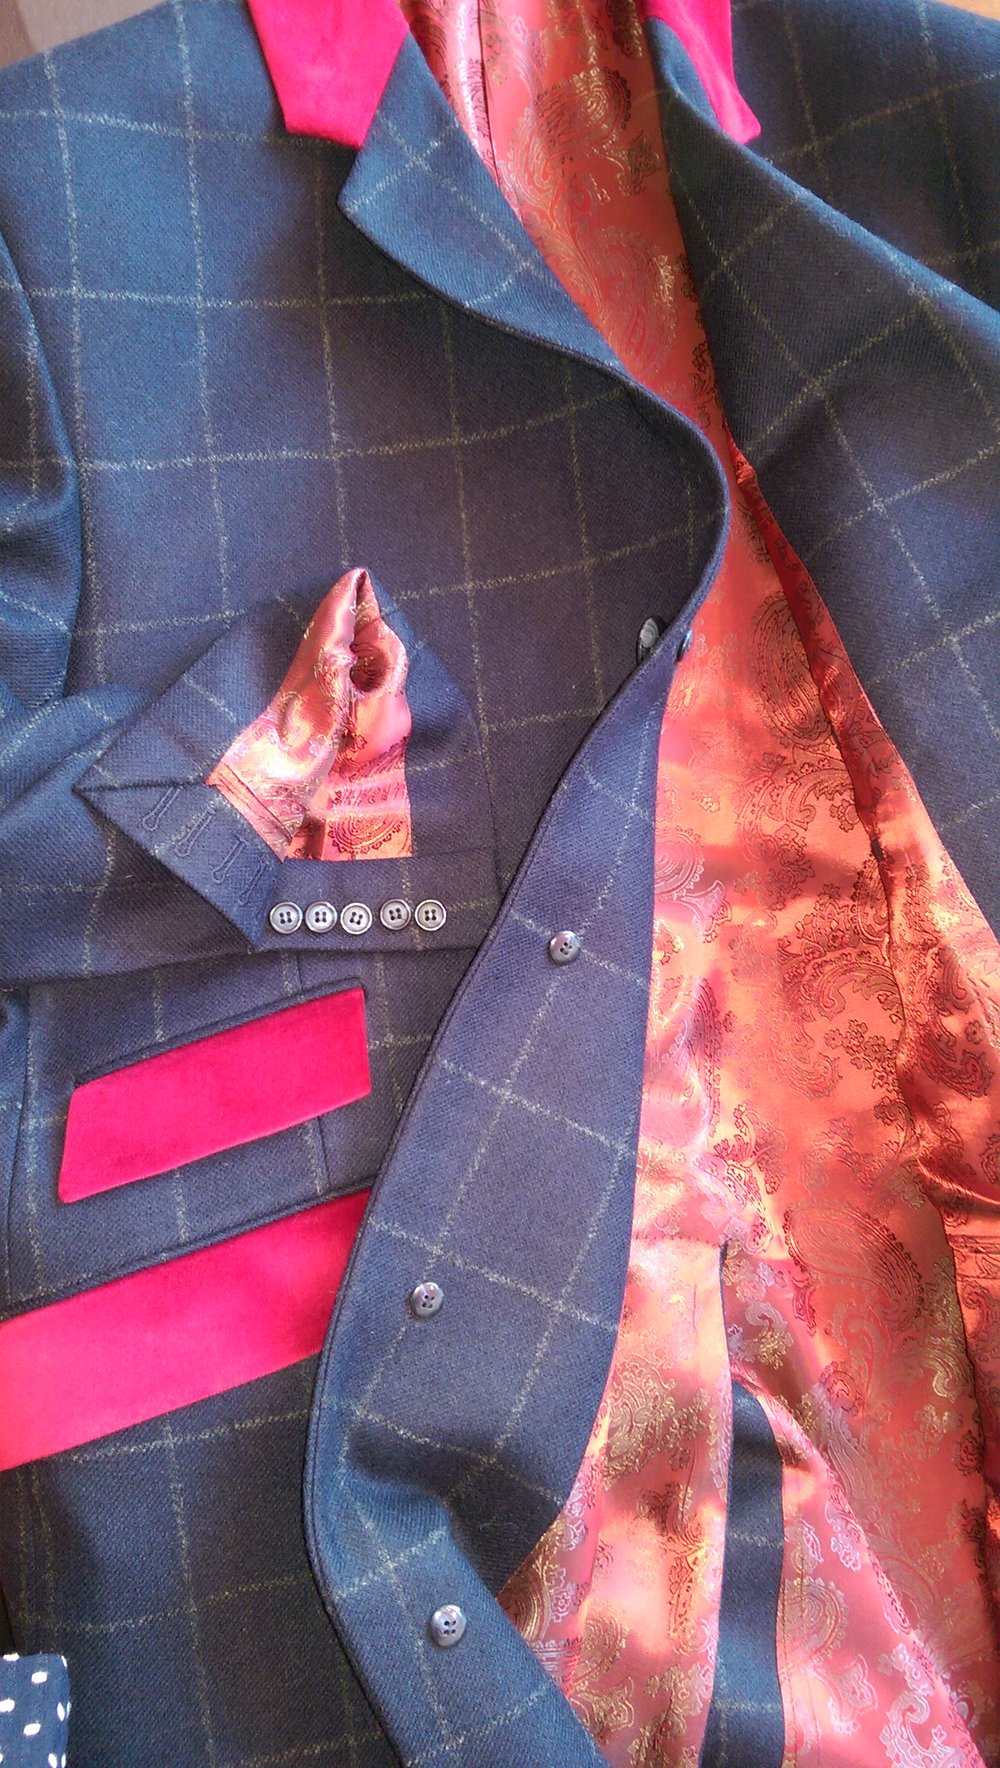 blue-tweed-coat-red-cord-detail-bespoke-paisley-lining-susannah-hall-tailoring-british-uk-made.jpg